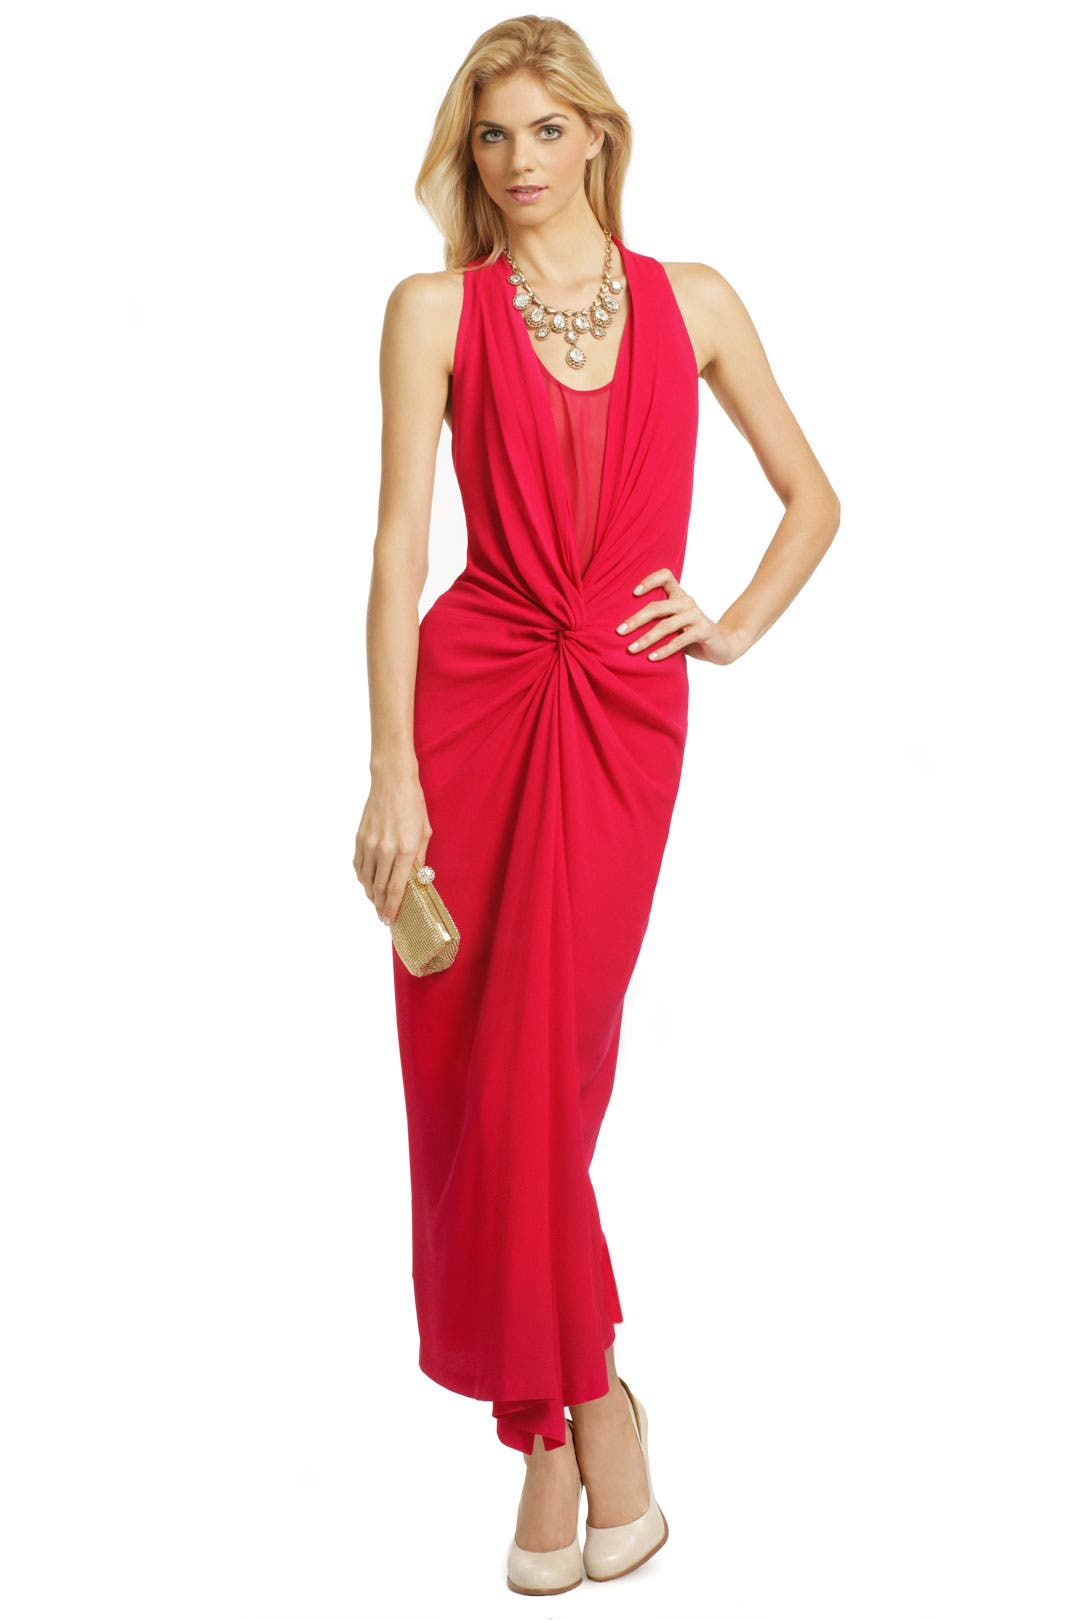 You Twist I Twist Dress by Diane von Furstenberg